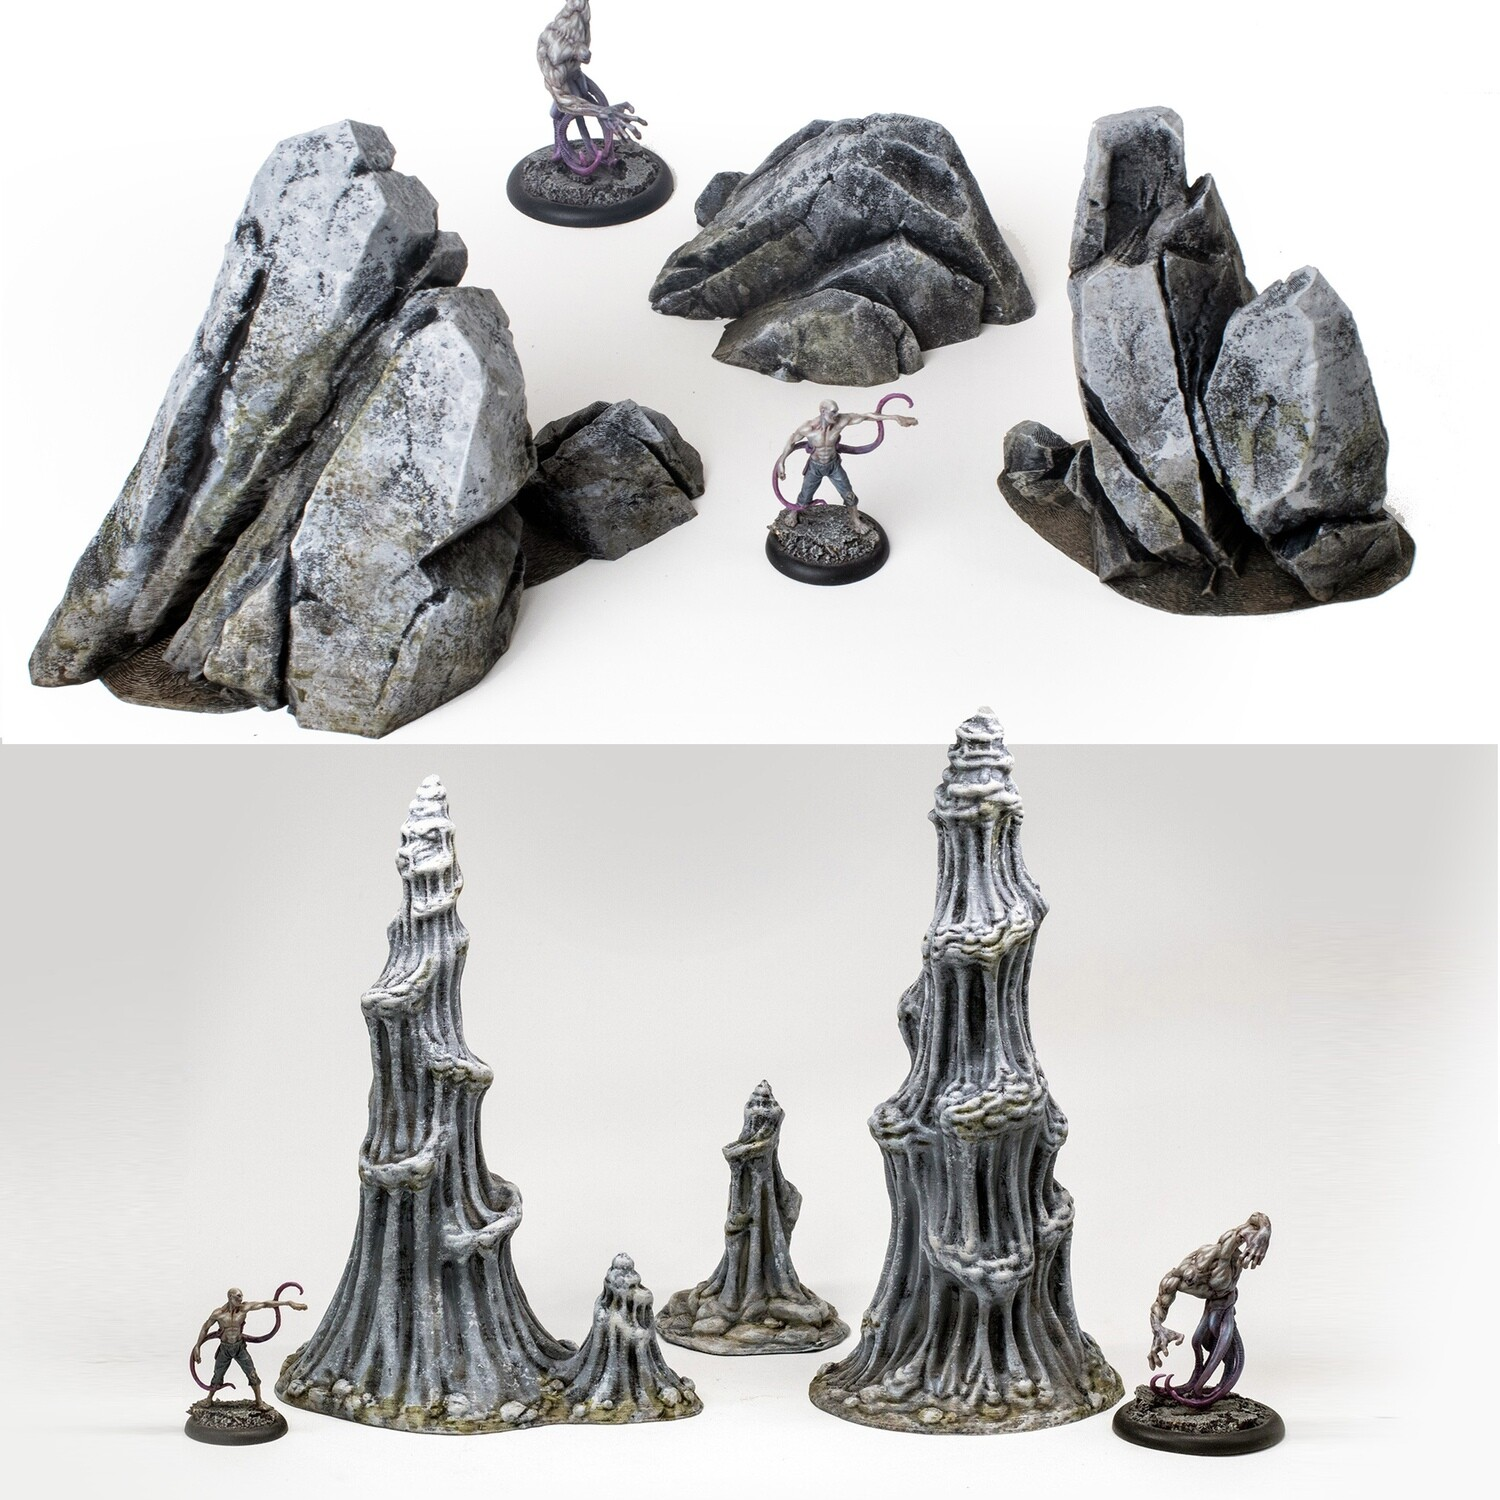 Rocky Outcrops and Stalagmites Bundle